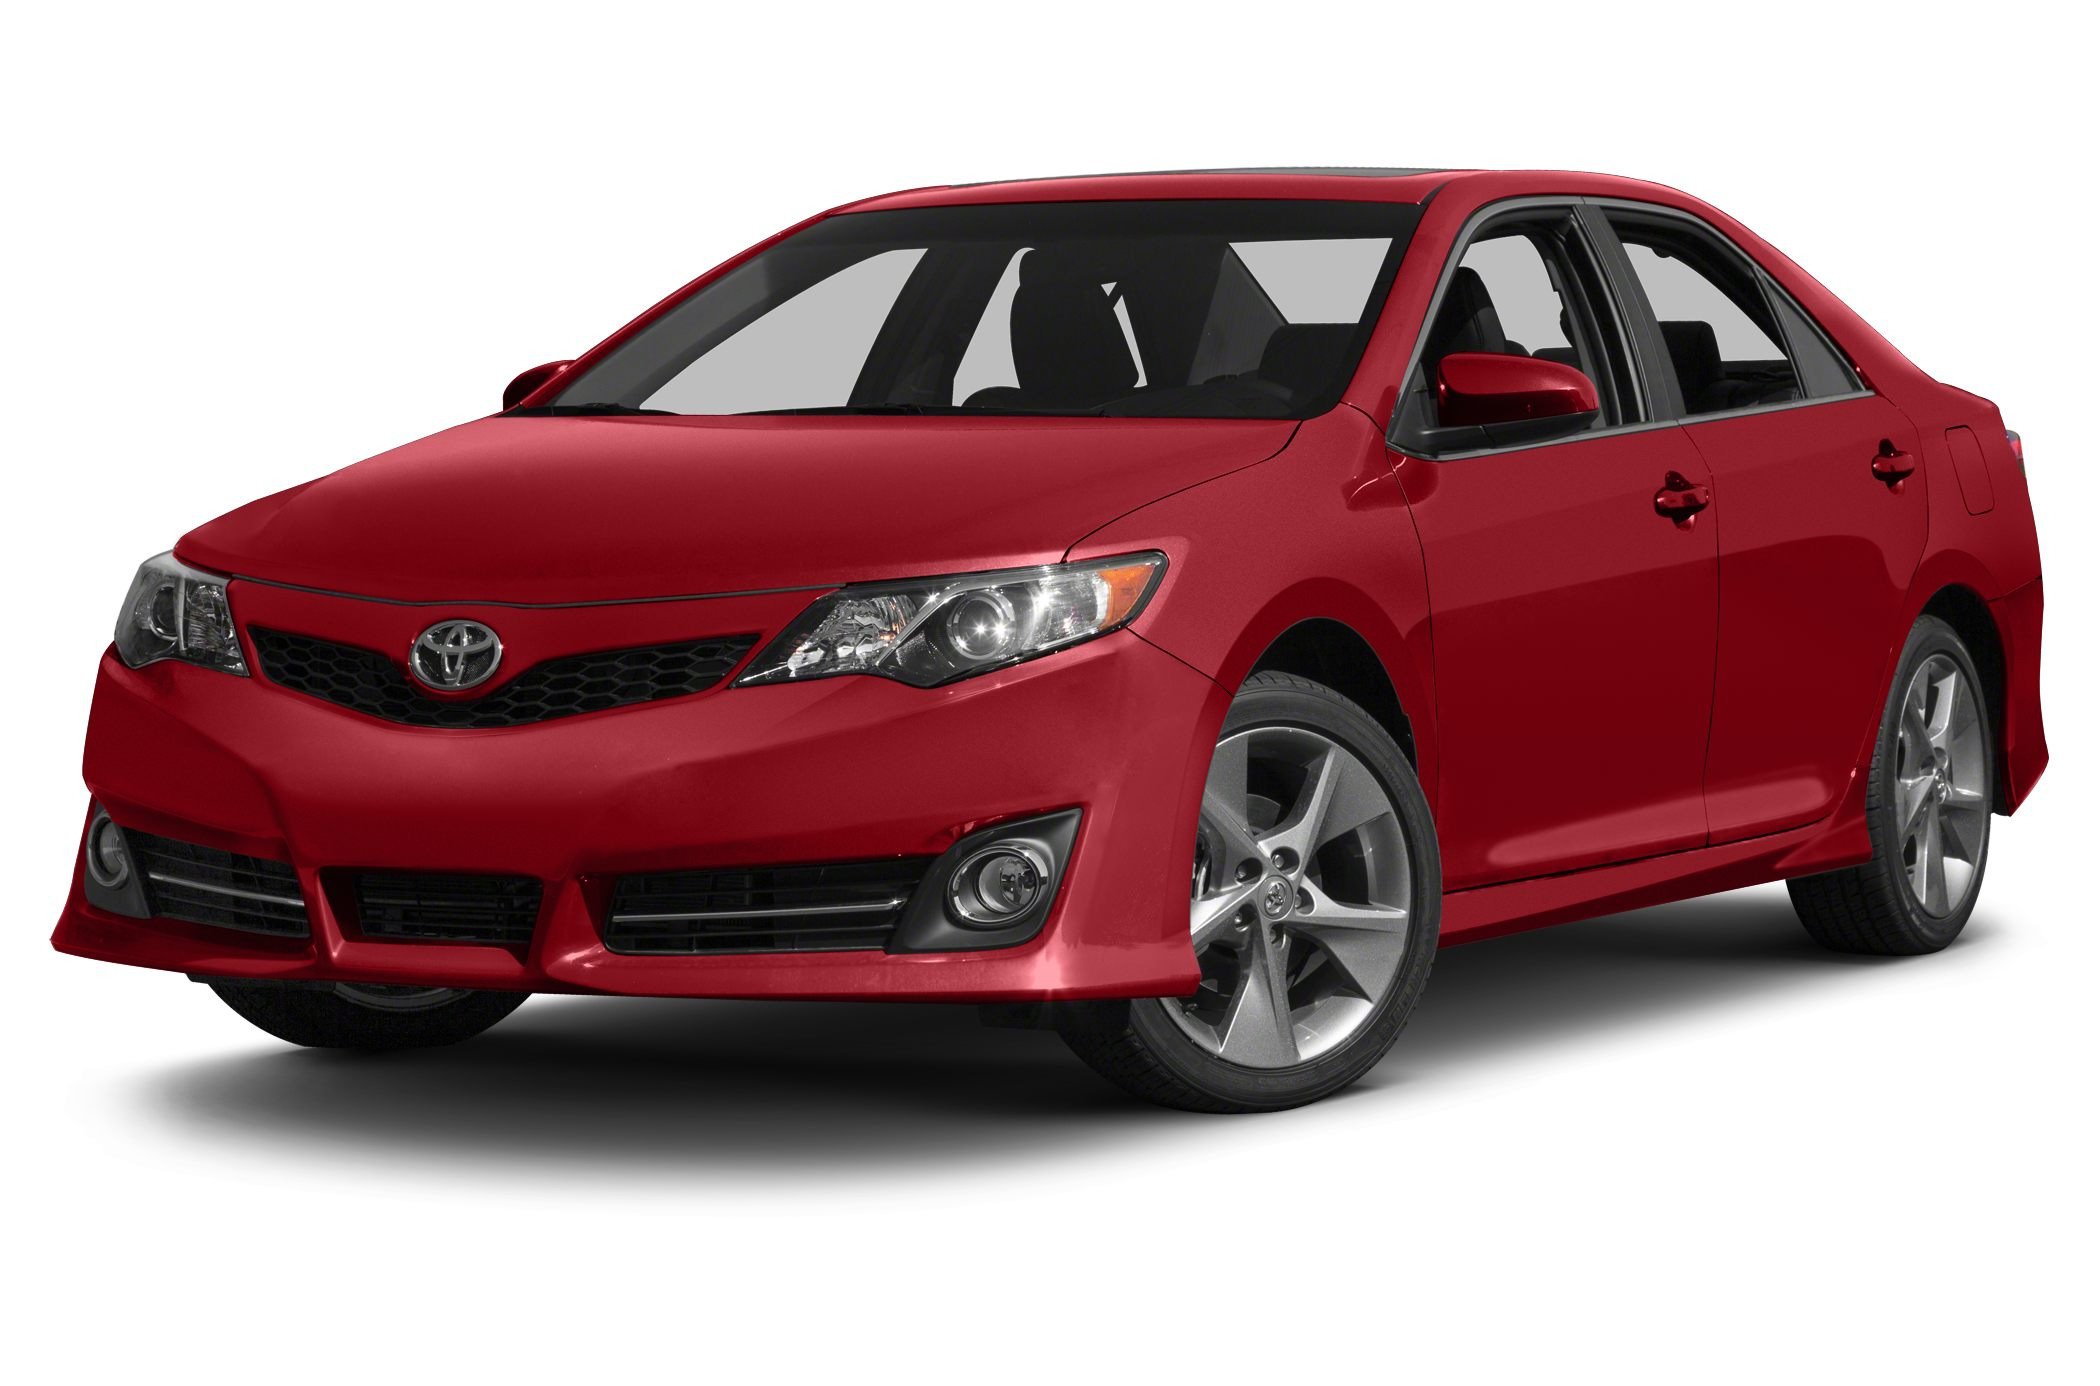 2014 Toyota Camry SE Sedan for sale in Mentor for $18,909 with 38,163 miles.